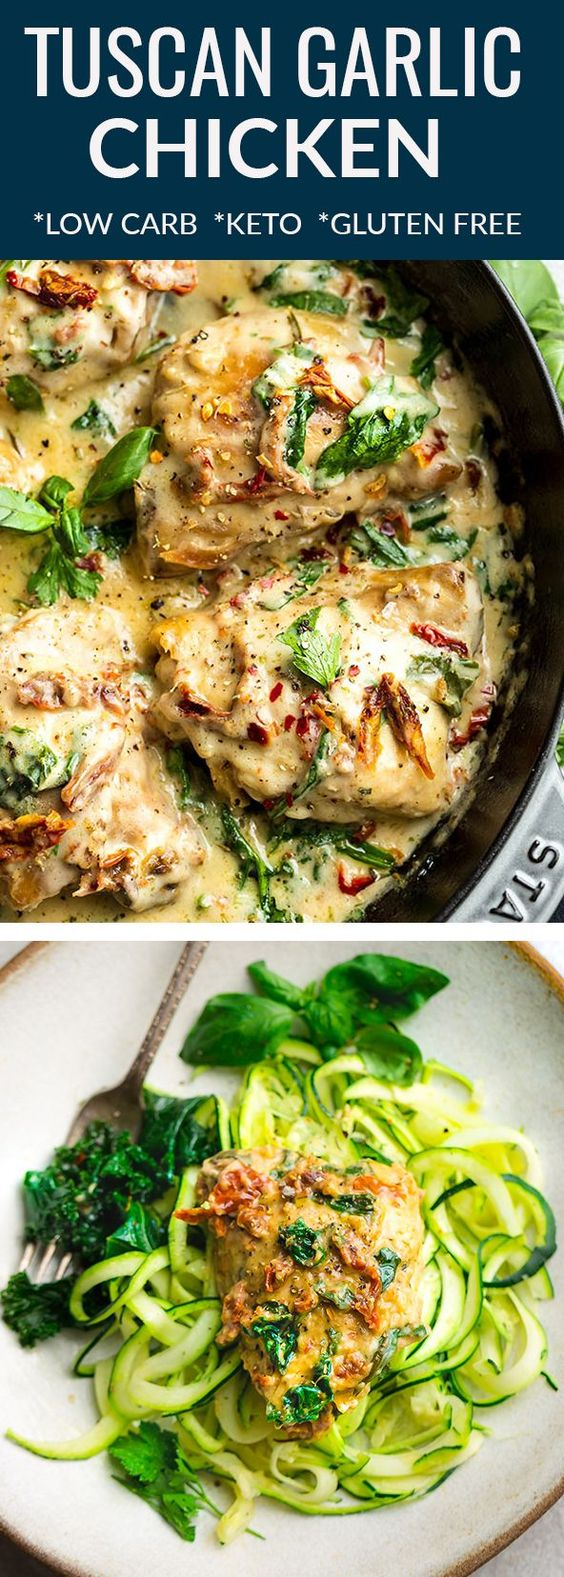 Keto Tuscan Garlic Chicken